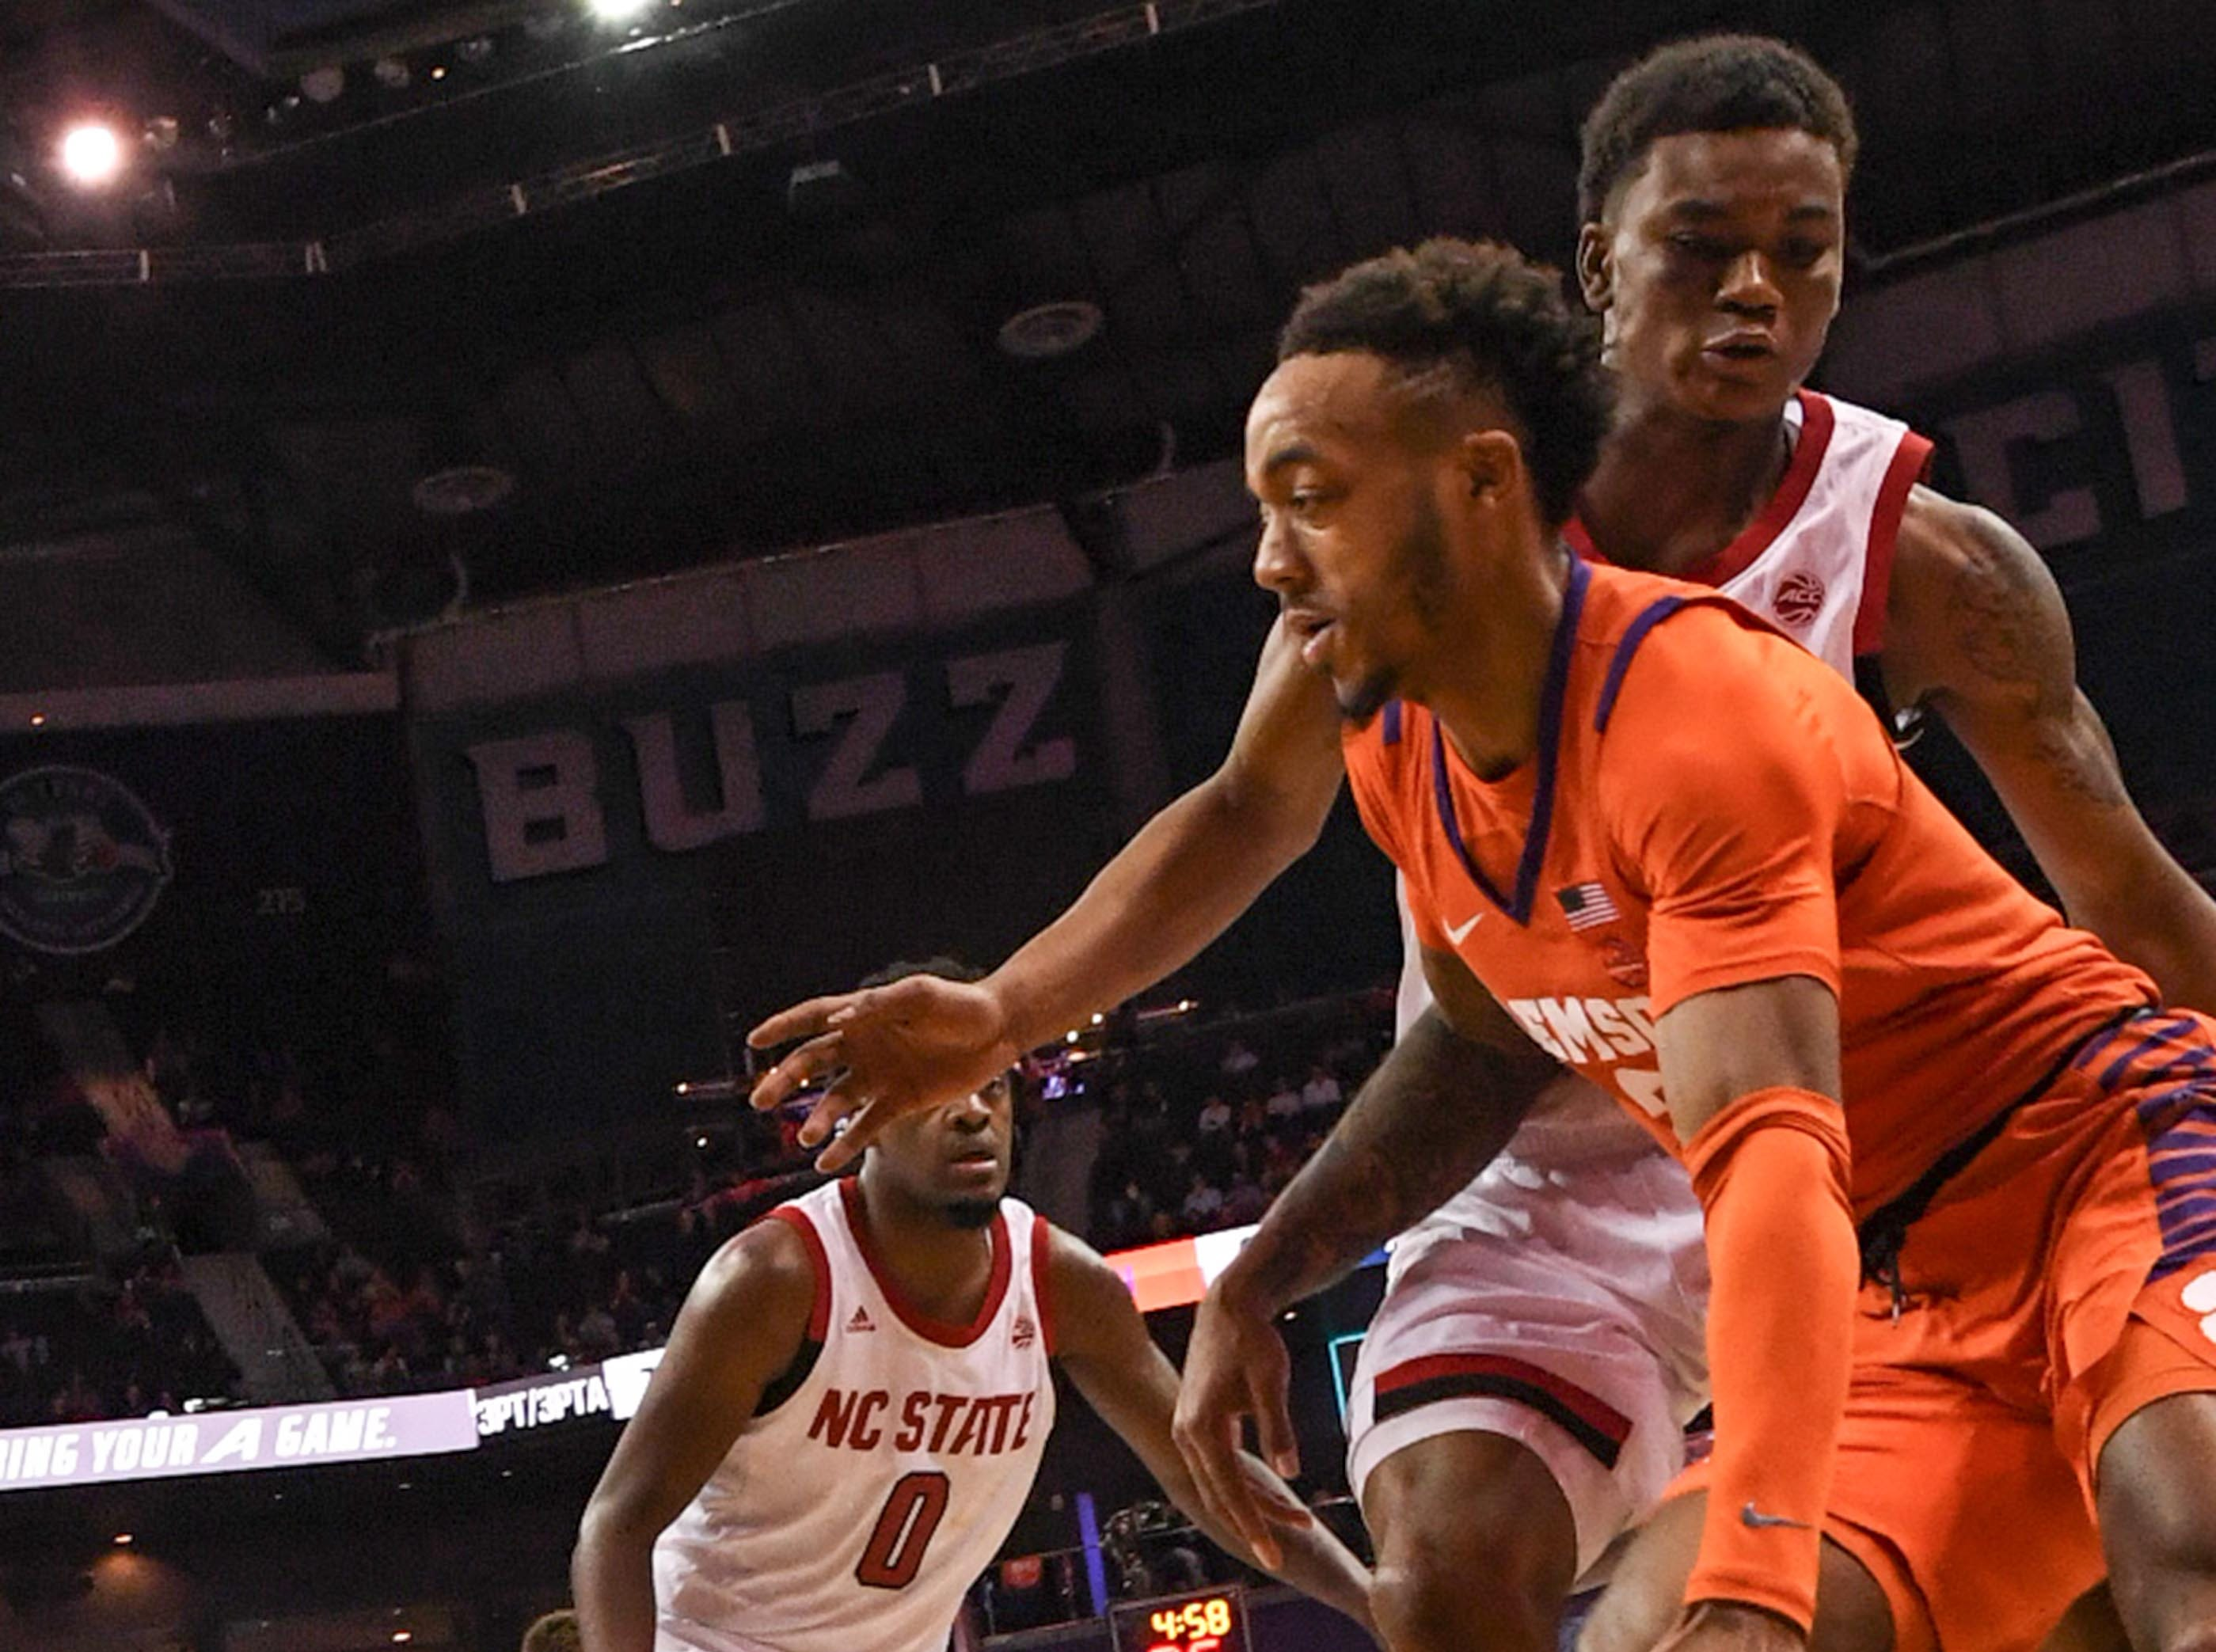 Clemson guard Marcquise Reed (2) dribbles around N.C. State guard C.J. Bryce(13) during the first half at the Spectrum Center in Charlotte, N.C. Tuesday, March 12, 2019.